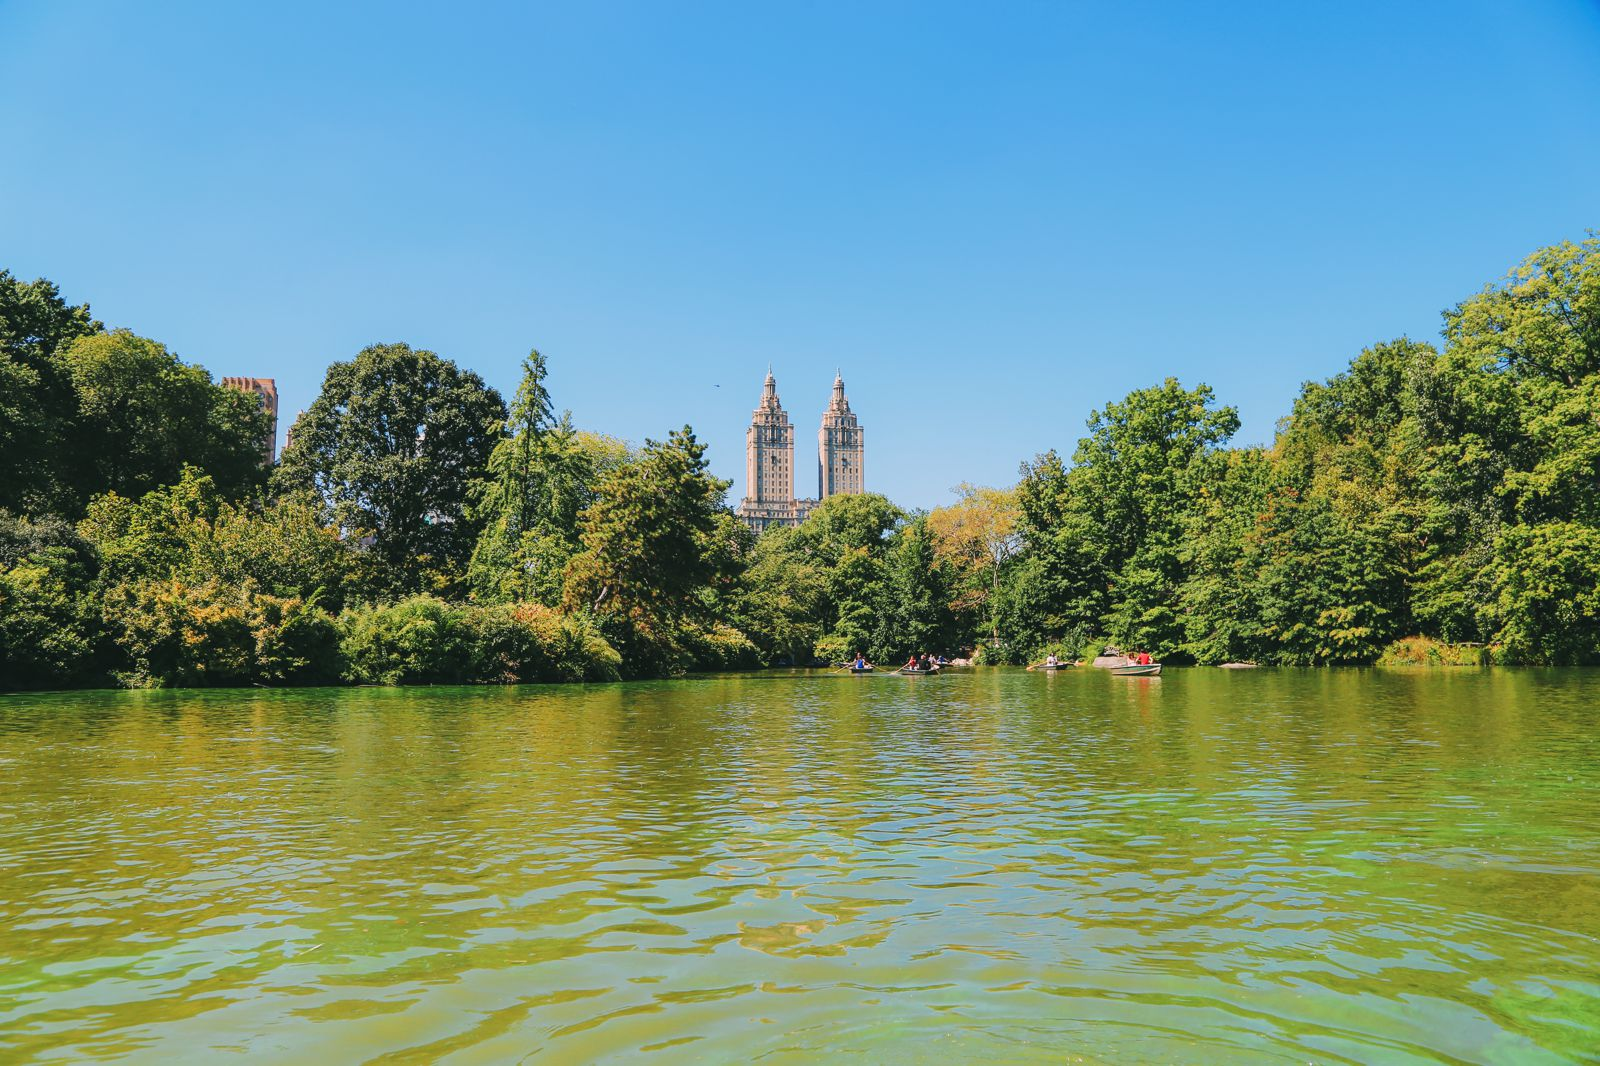 Boating at the Loeb Boathouse in Central Park, New York City (24)